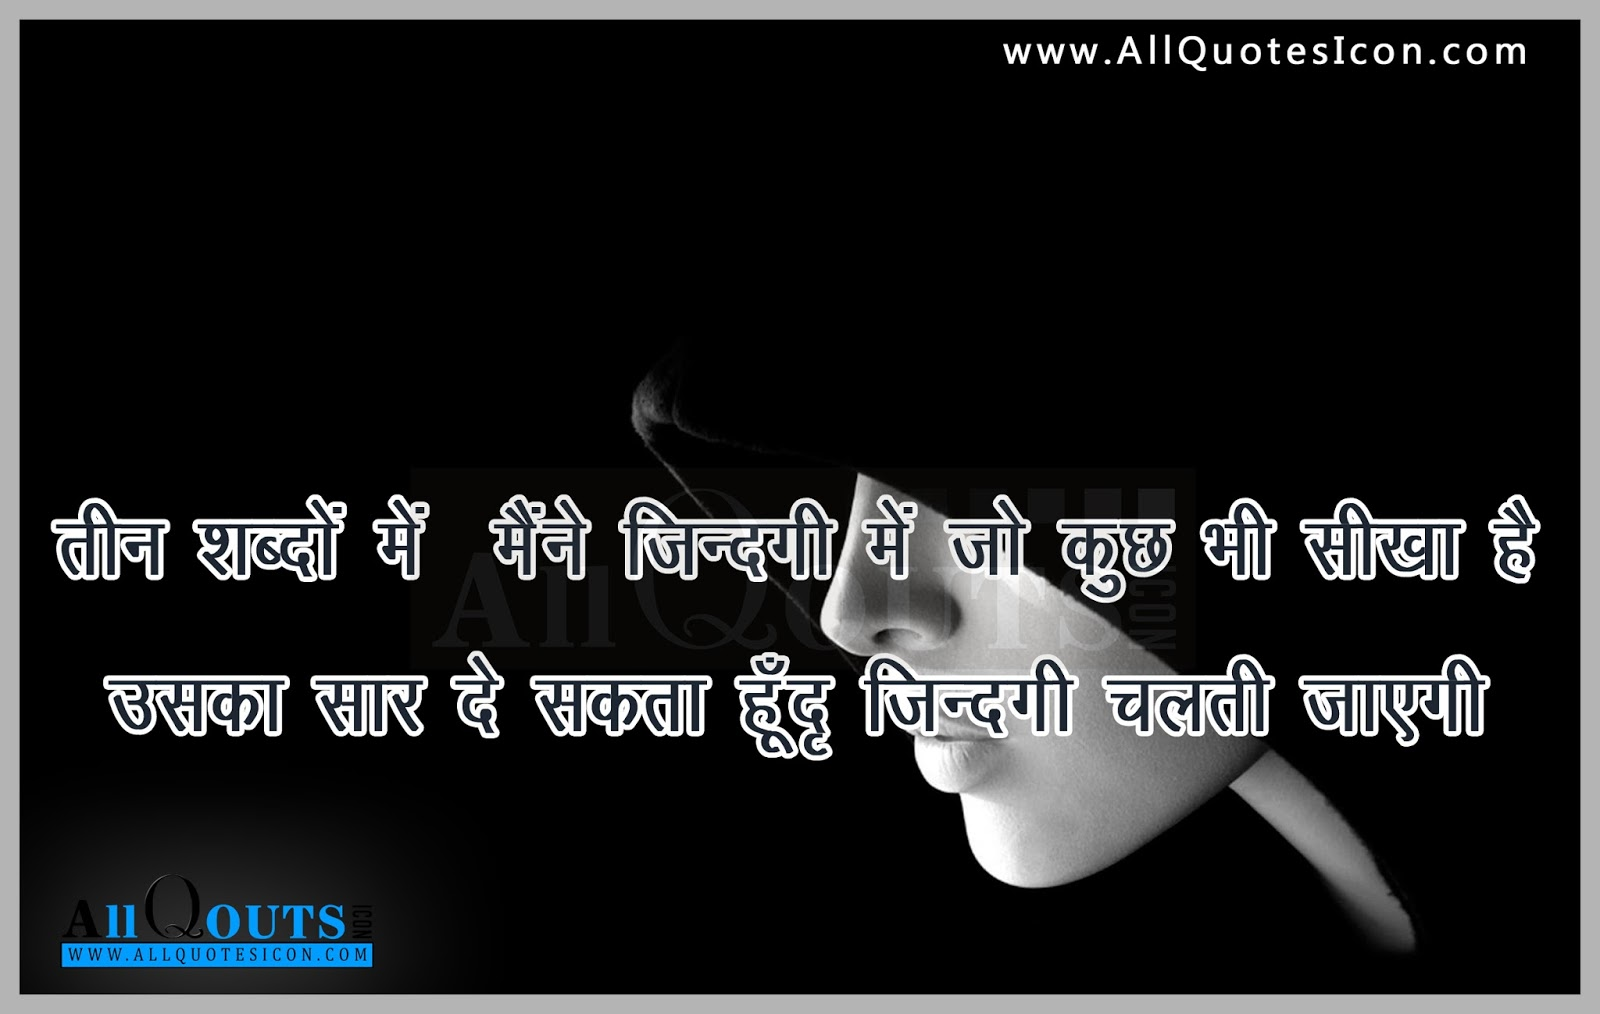 51 Quotes: Best Hindi Quotes Inspirational Quotes About